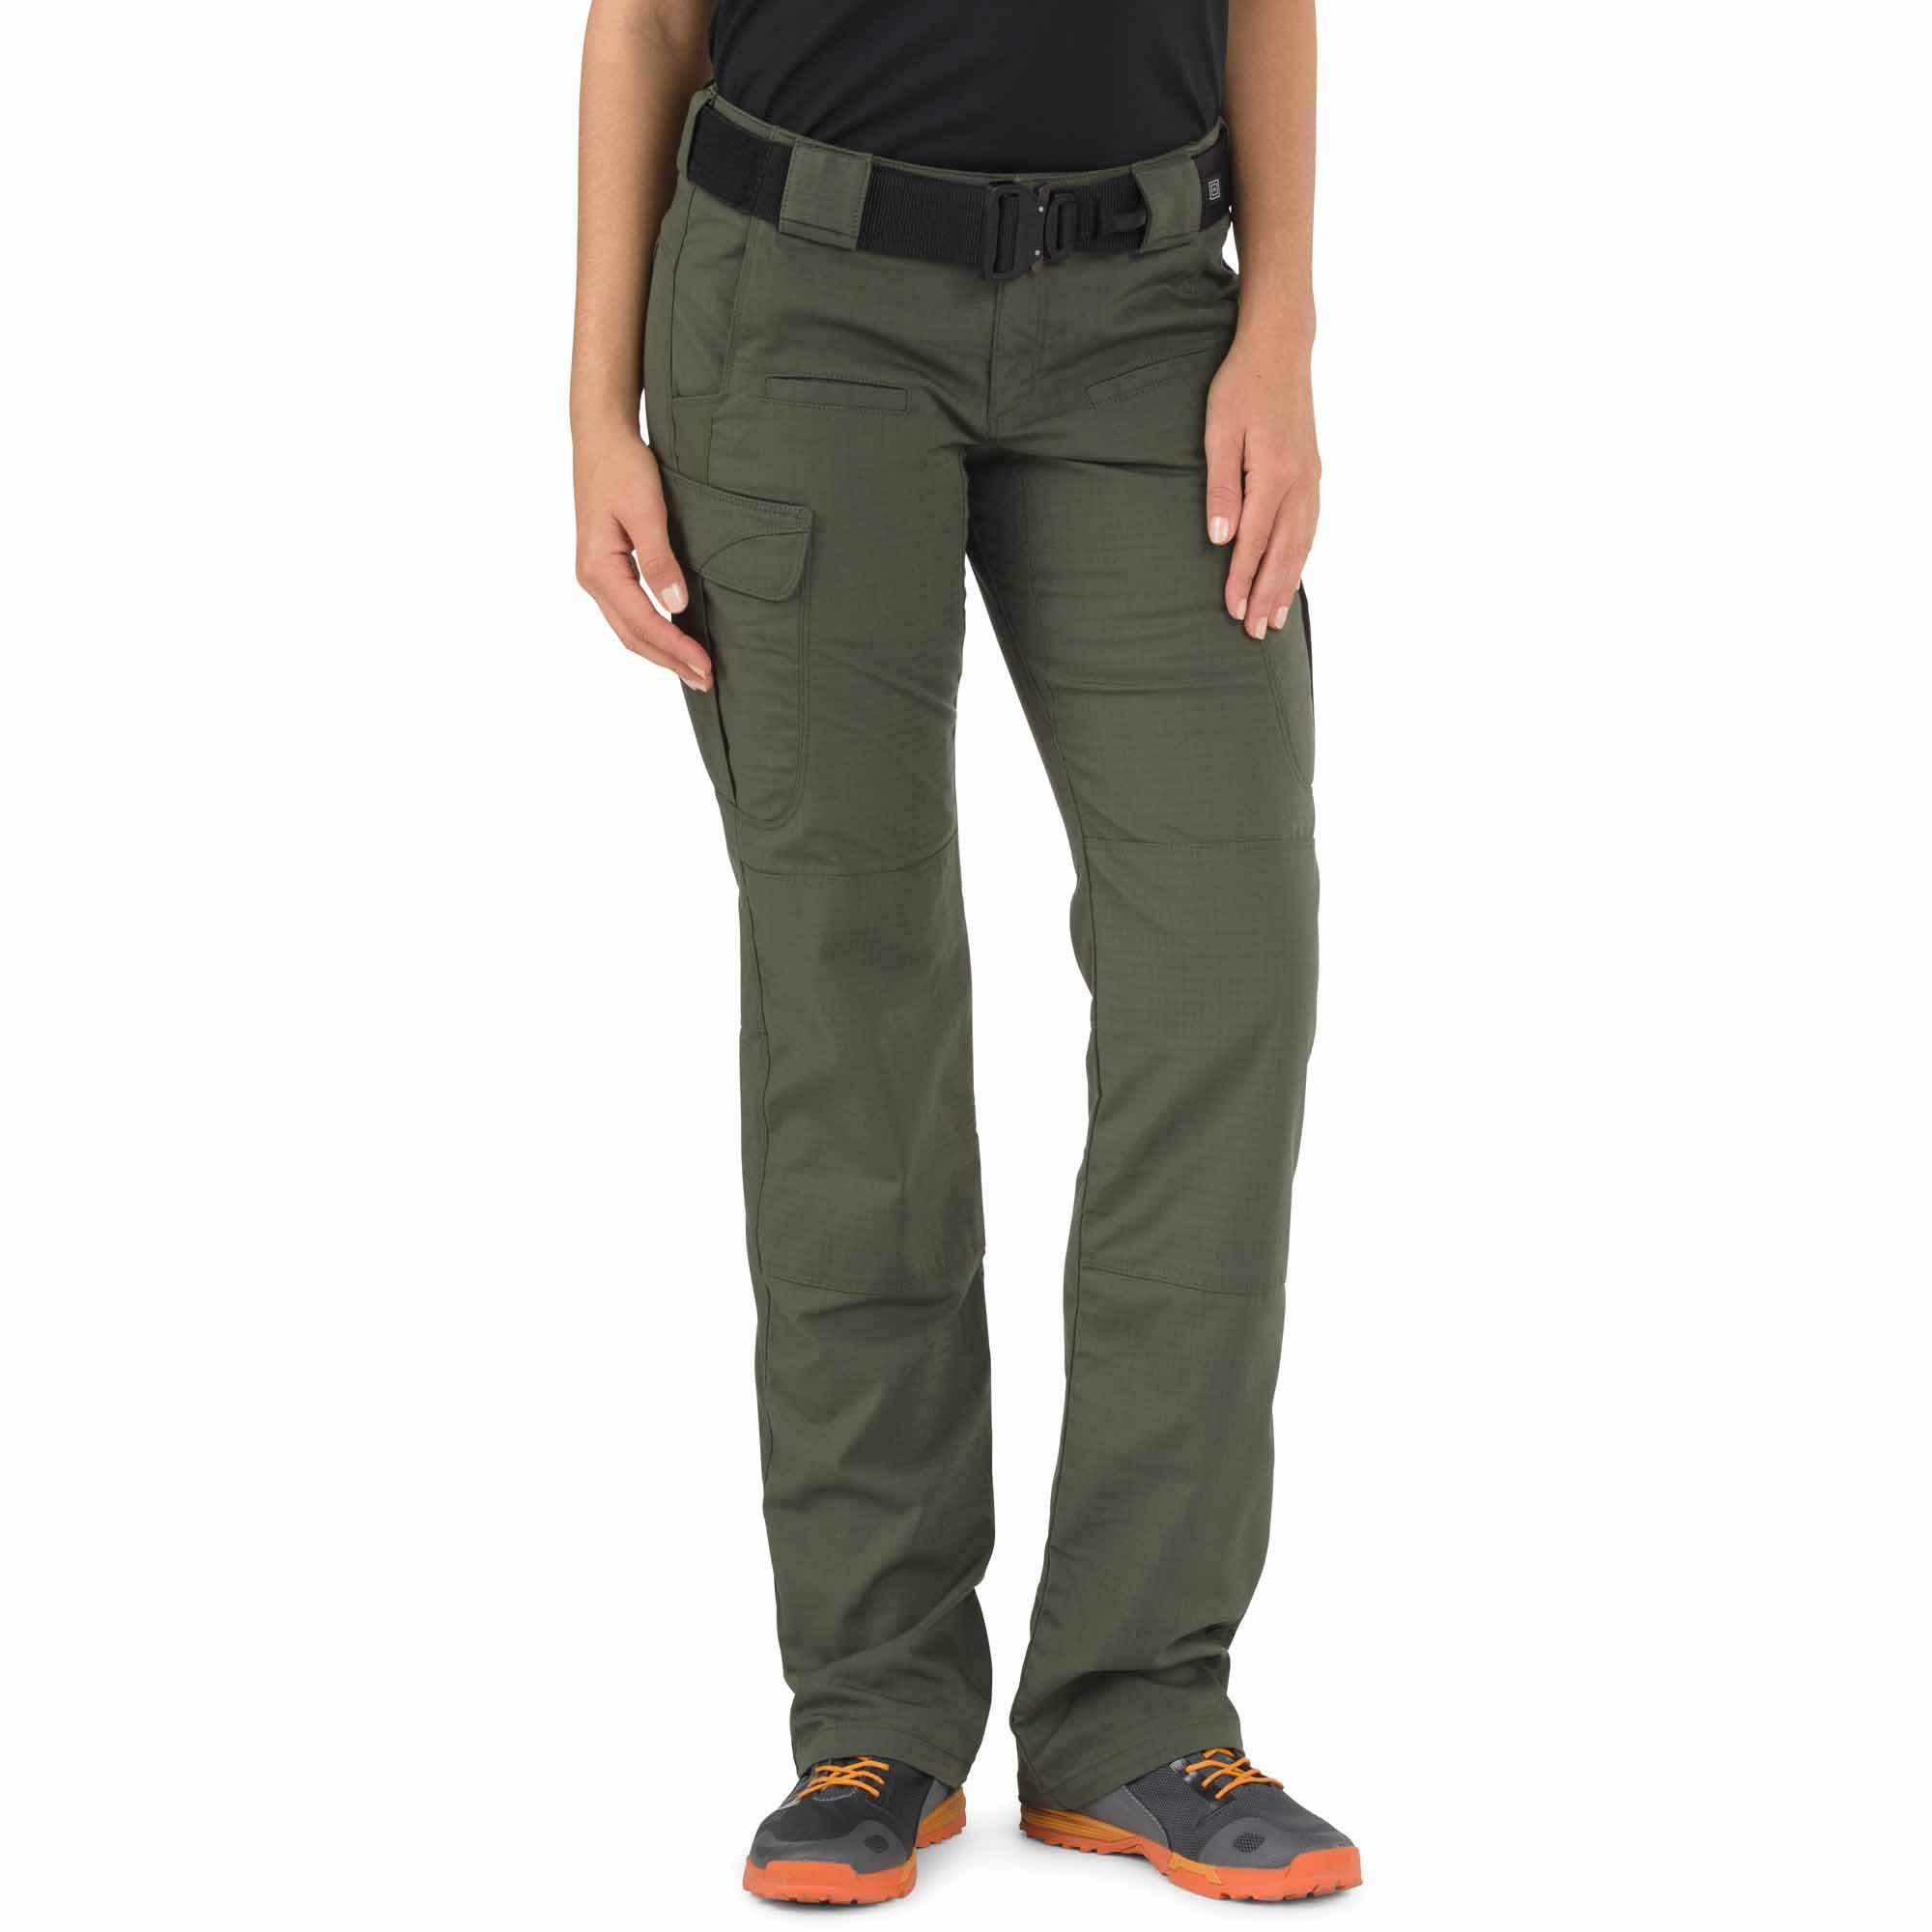 5.11 Tactical Women's Stryke Pant, Tdu Green, 0 L by 5.11